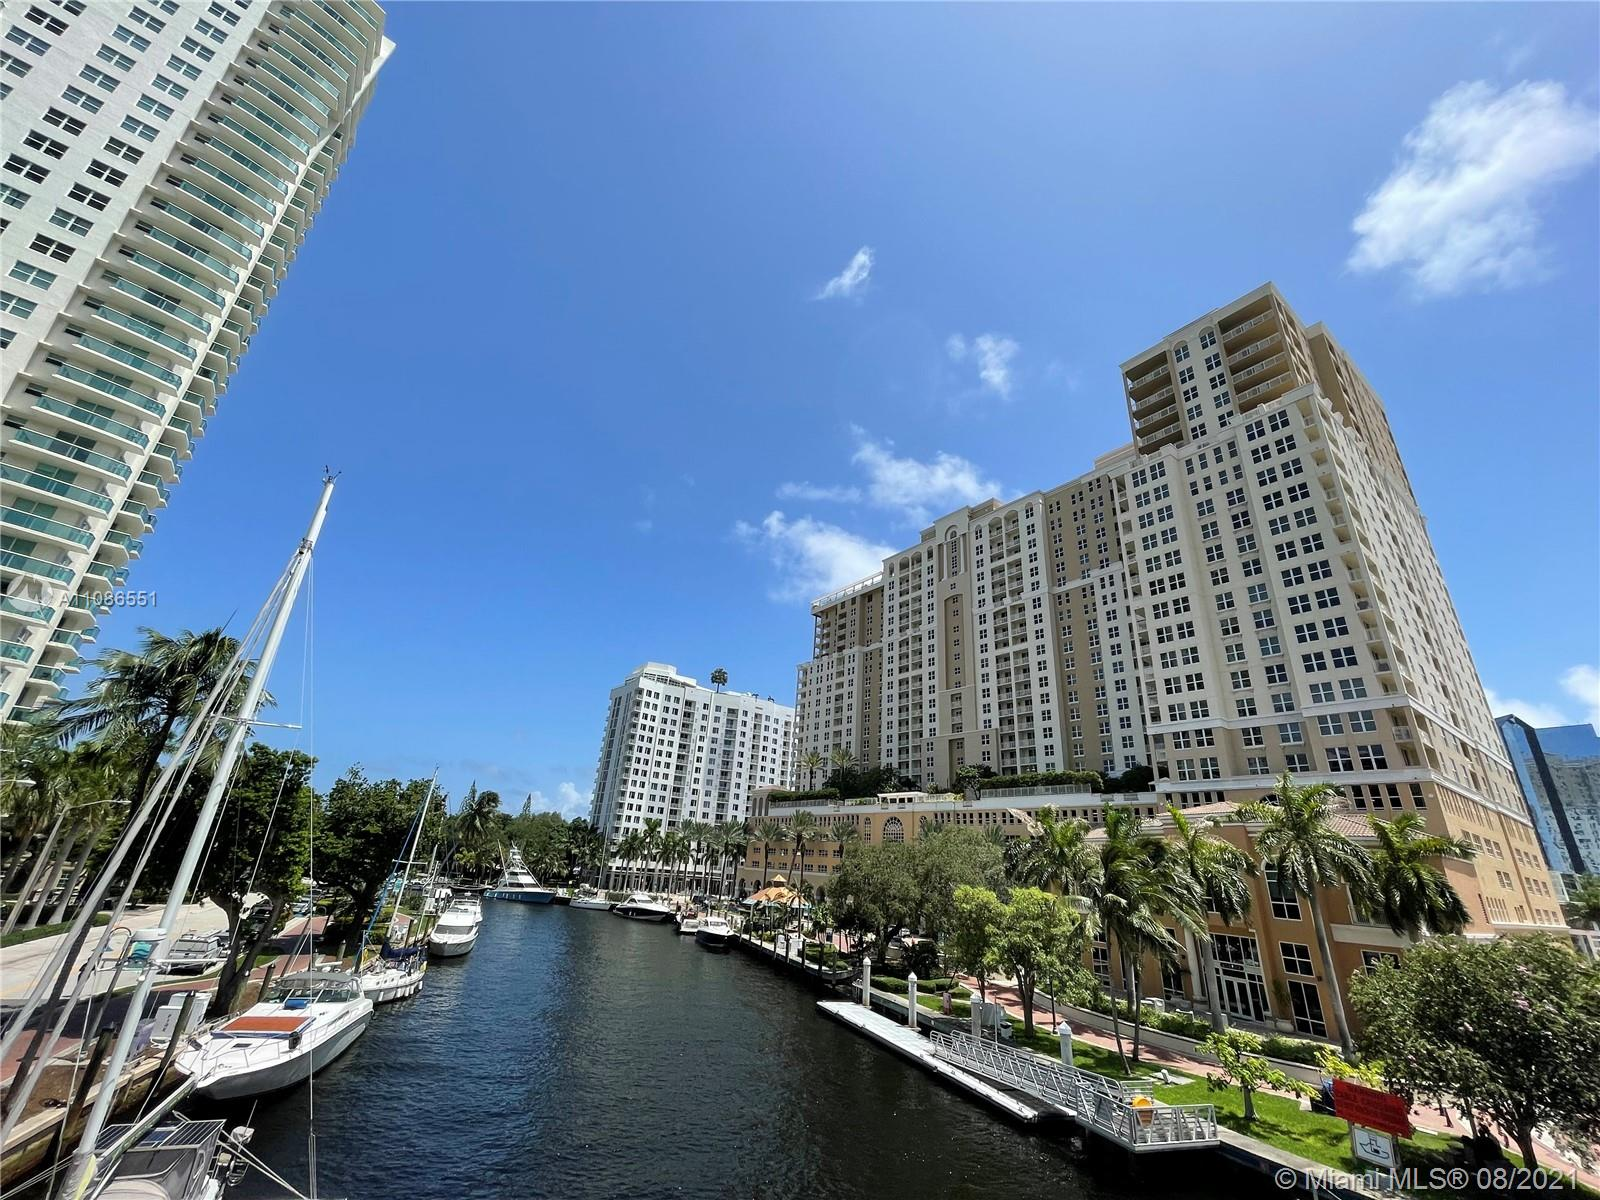 Located in the heart of Downtown Fort Lauderdale, this south-facing 2br/2ba boasts a spacious open concept floorplan with split bedroom layout and is perfect for entertaining. The kitchen features stone countertop/backsplash, modern Italian shaker style cabinetry and stainless steel appliances. The unit is smartly updated with engineered wood floors in both bedrooms, newer appliances, stacked laundry, new hot water heater and a large single basin kitchen sink with touchless faucet. Just steps from downtown, the 5 Star building amenities include: rooftop pool and Sky Lounge with panoramic views, 2 story fitness center with basketball and racquetball courts, 24hr front desk attendant, 24hr valet, His and Hers locker rooms with steam and sauna, business center and much more!